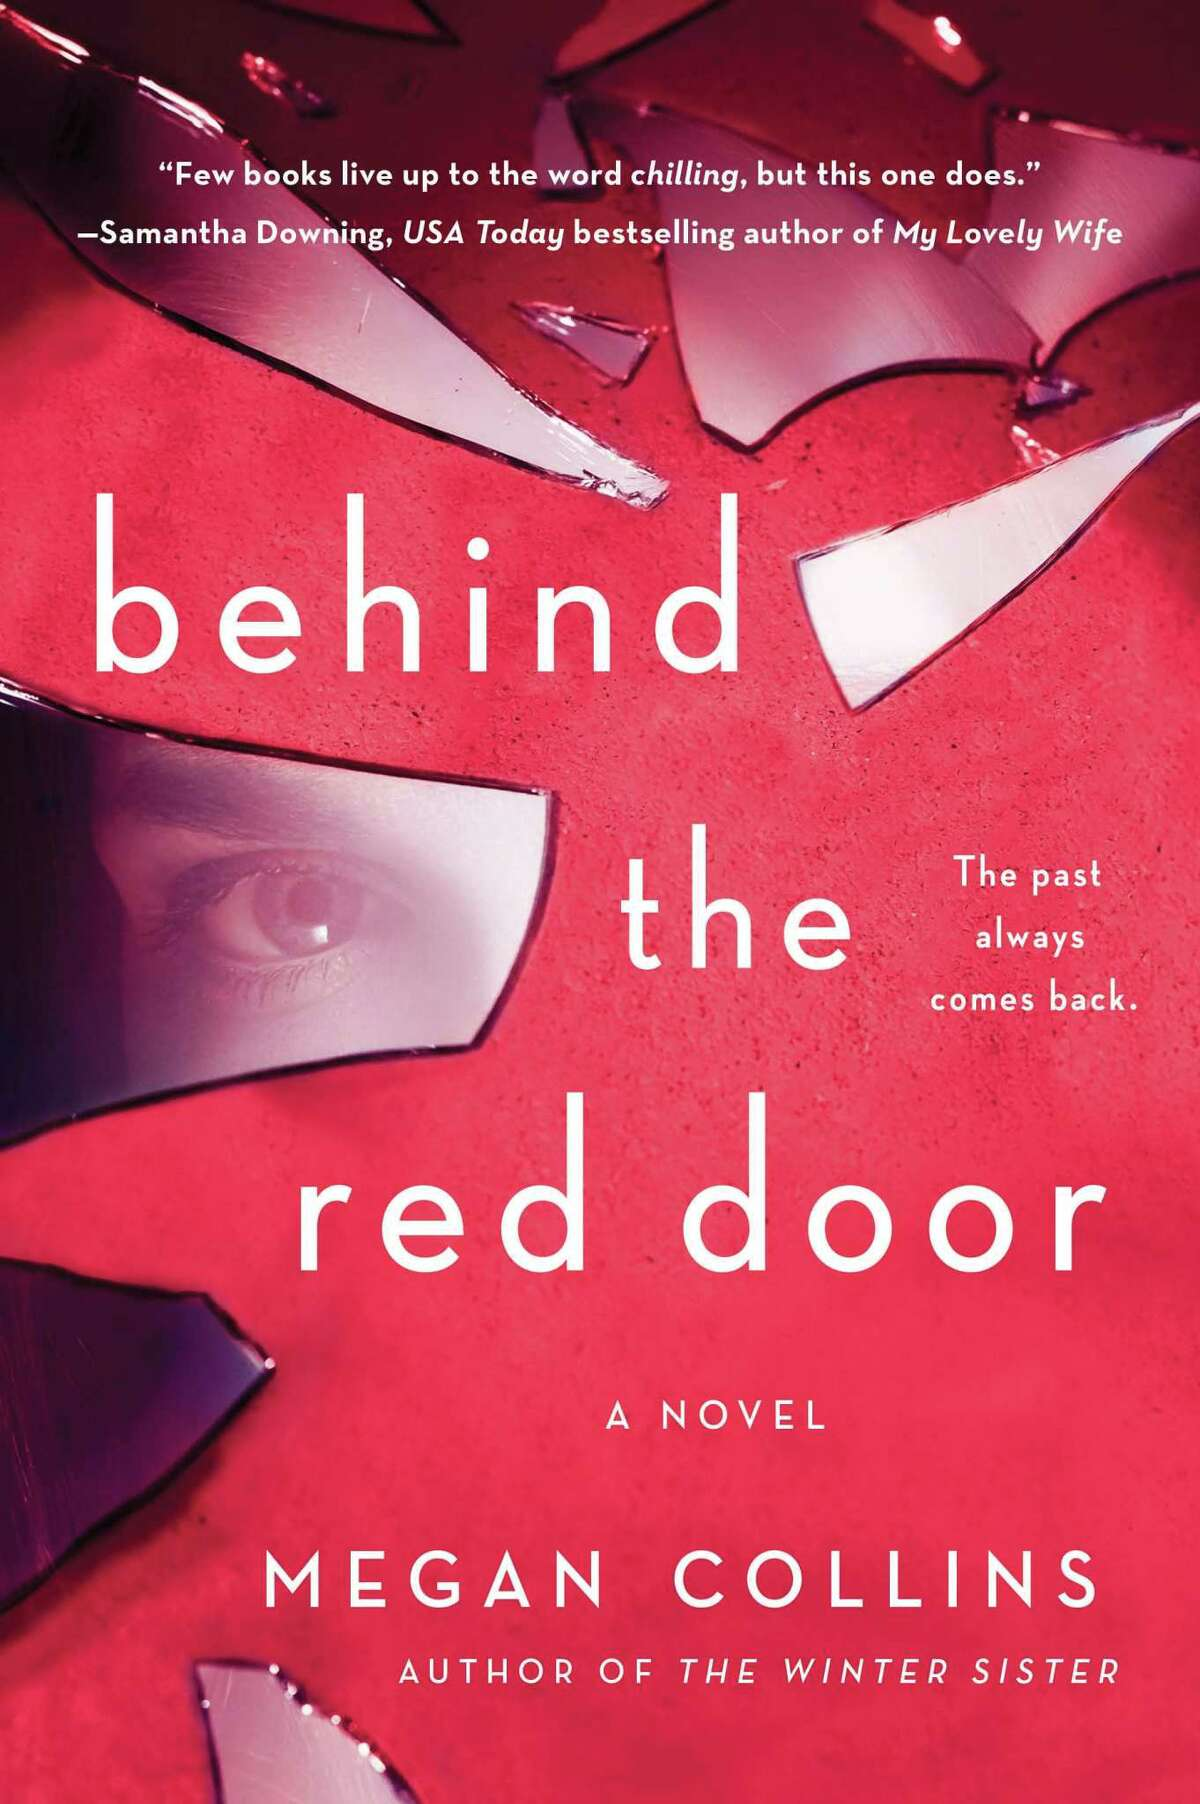 Manchester author Megan Collins chats about her writing her latest thriller